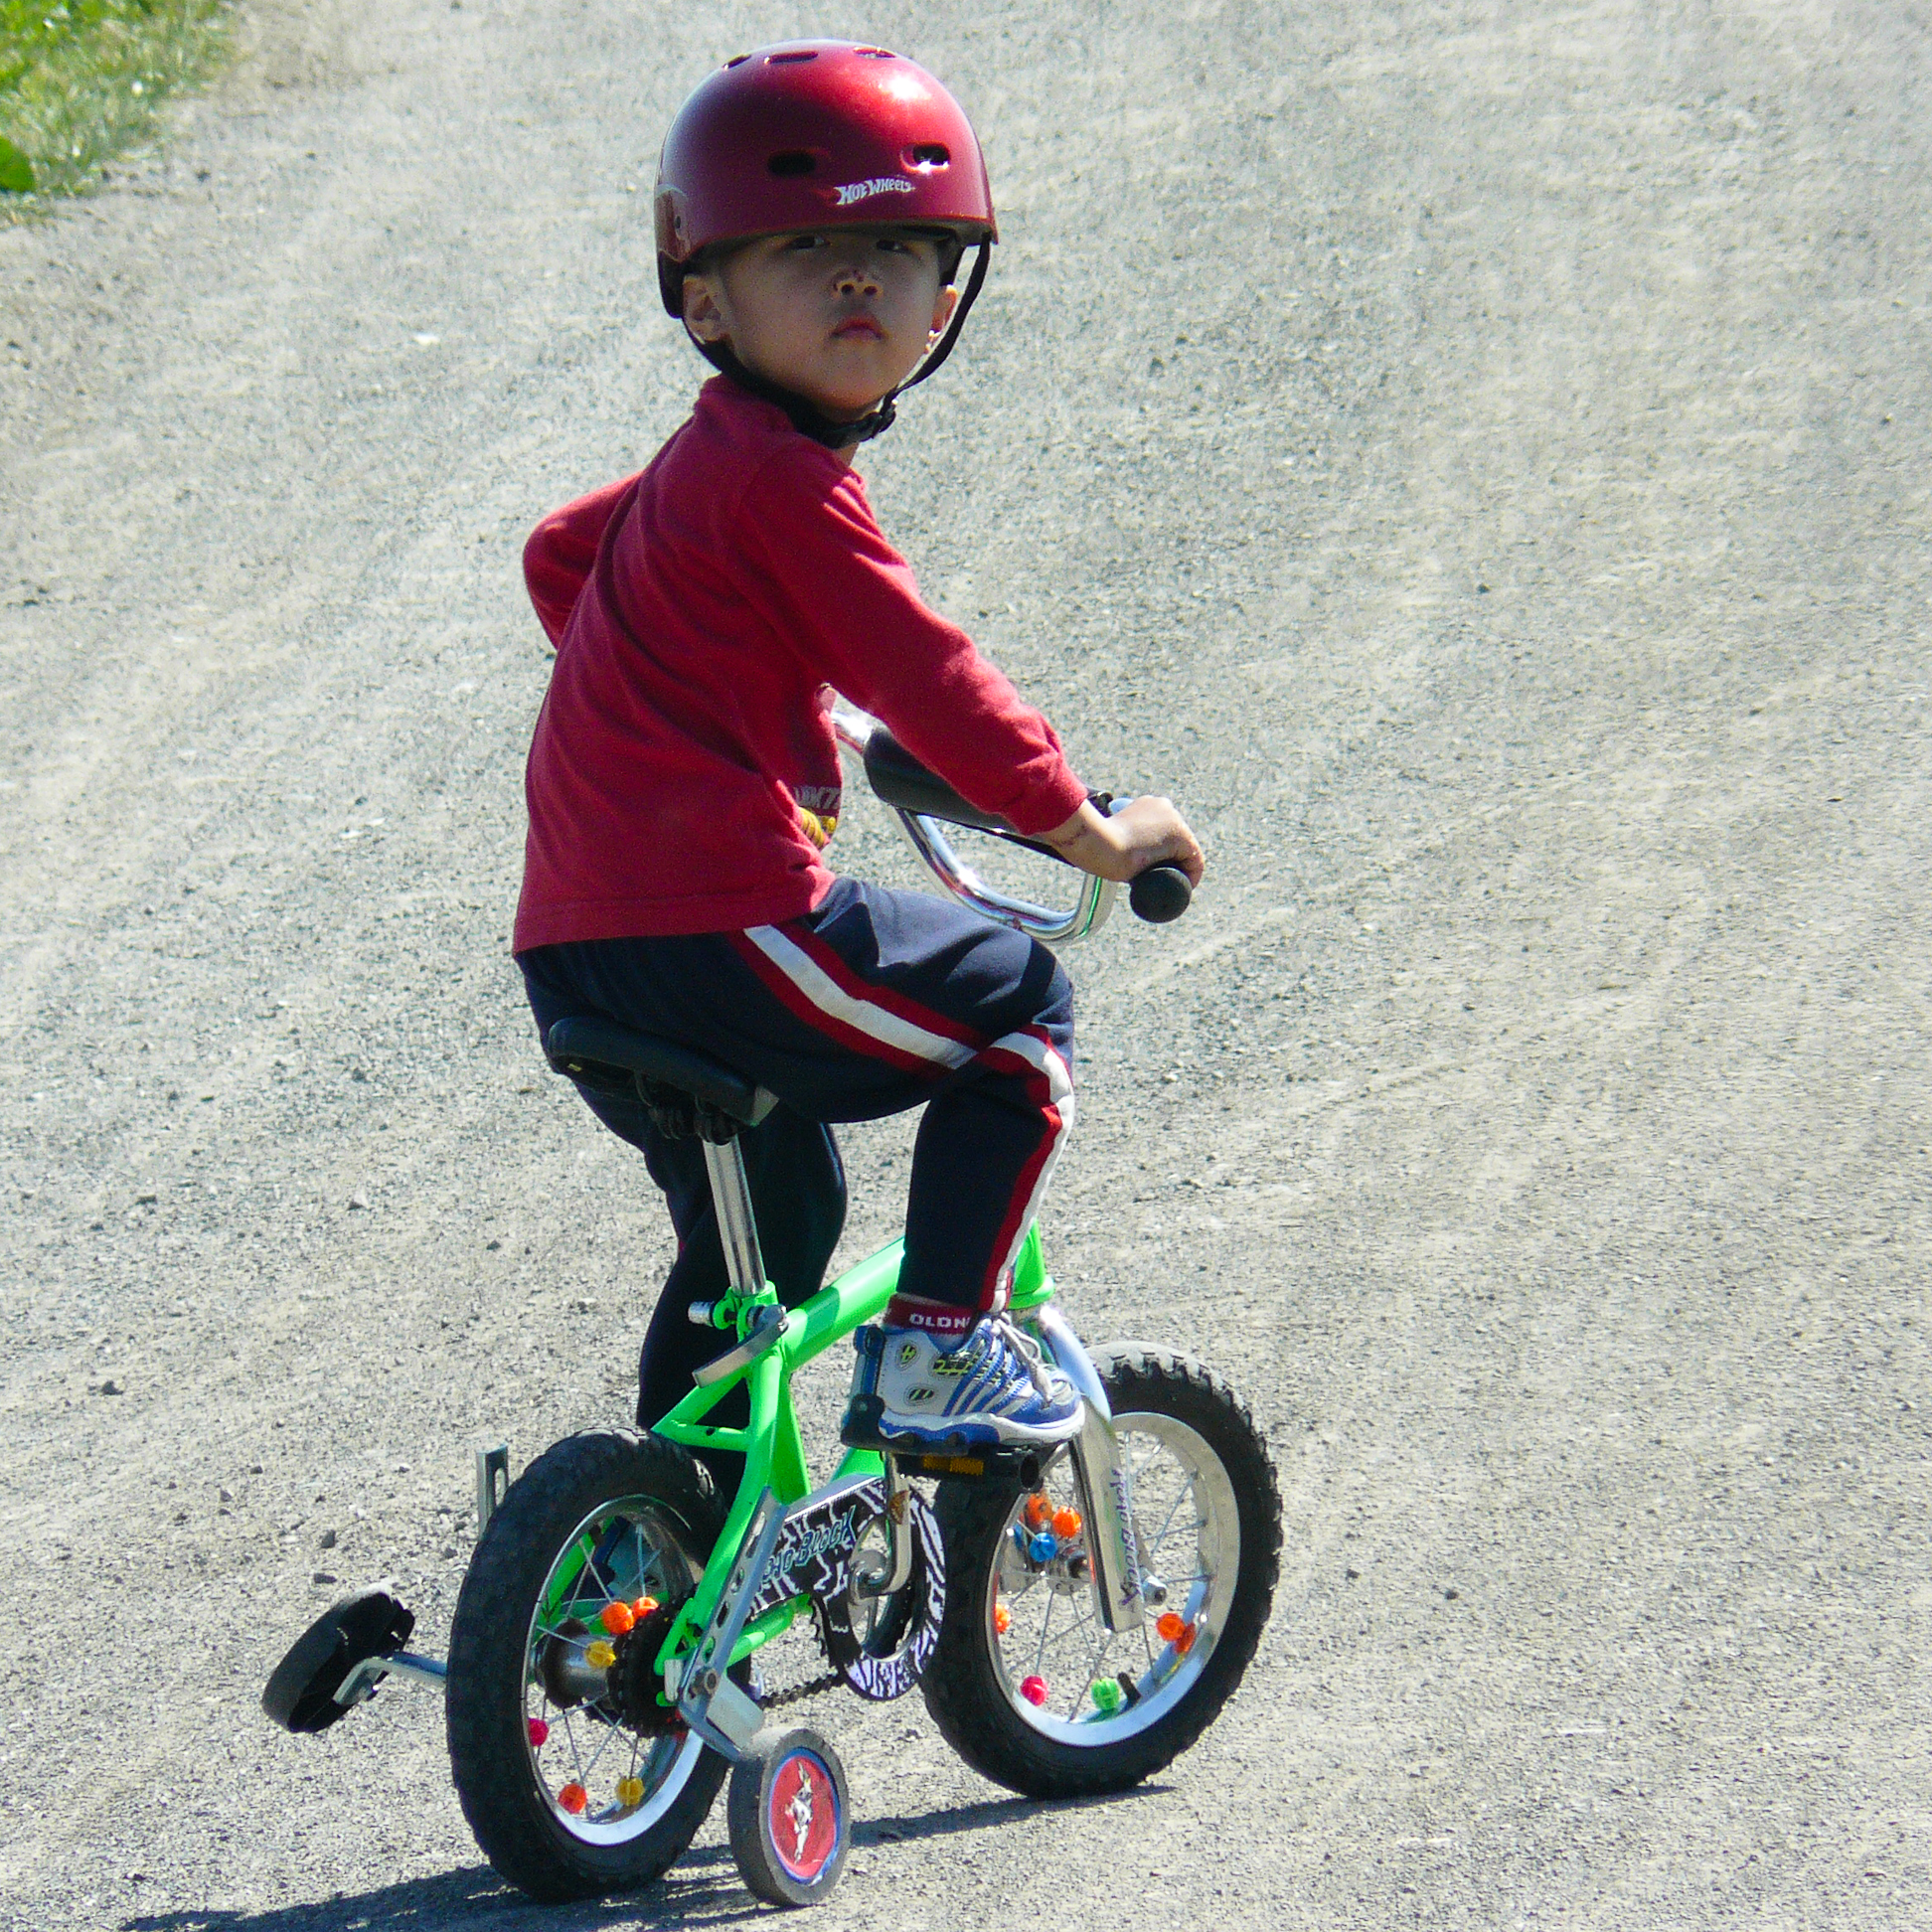 Bikes With Training Wheels For Boys File Helmeted boy on training